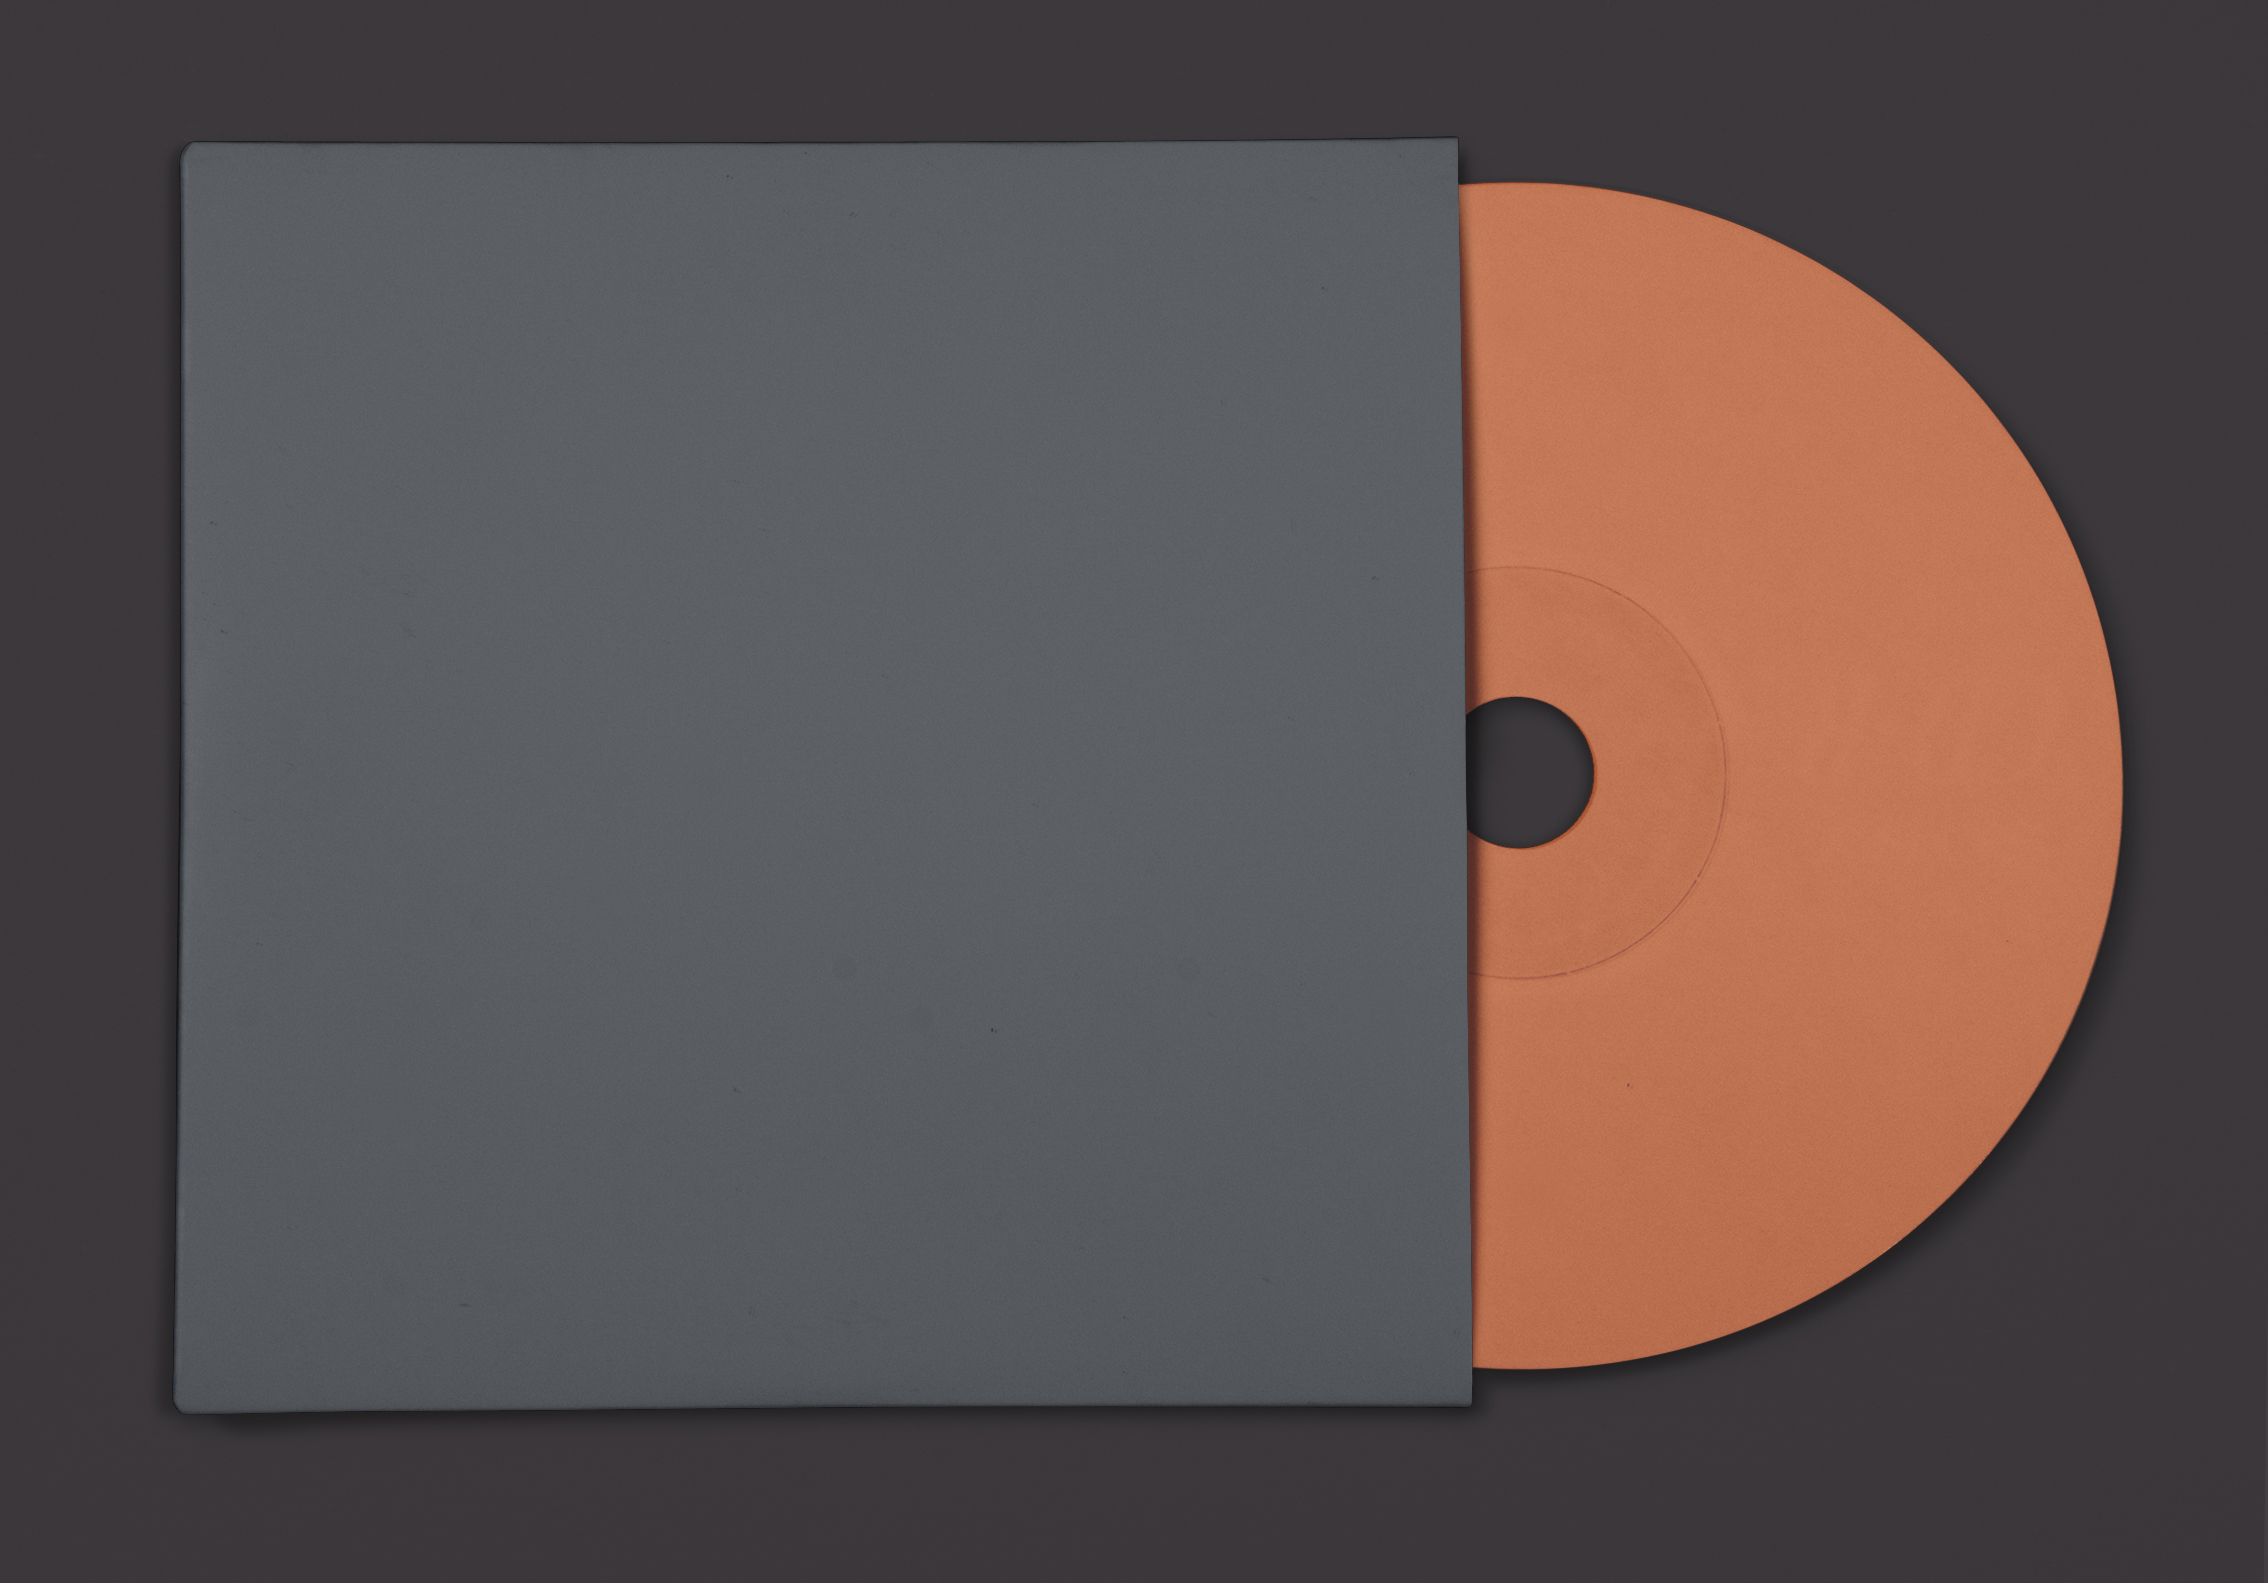 The CD Case Mockup Templates Get an Upgrade! - Go Media ...